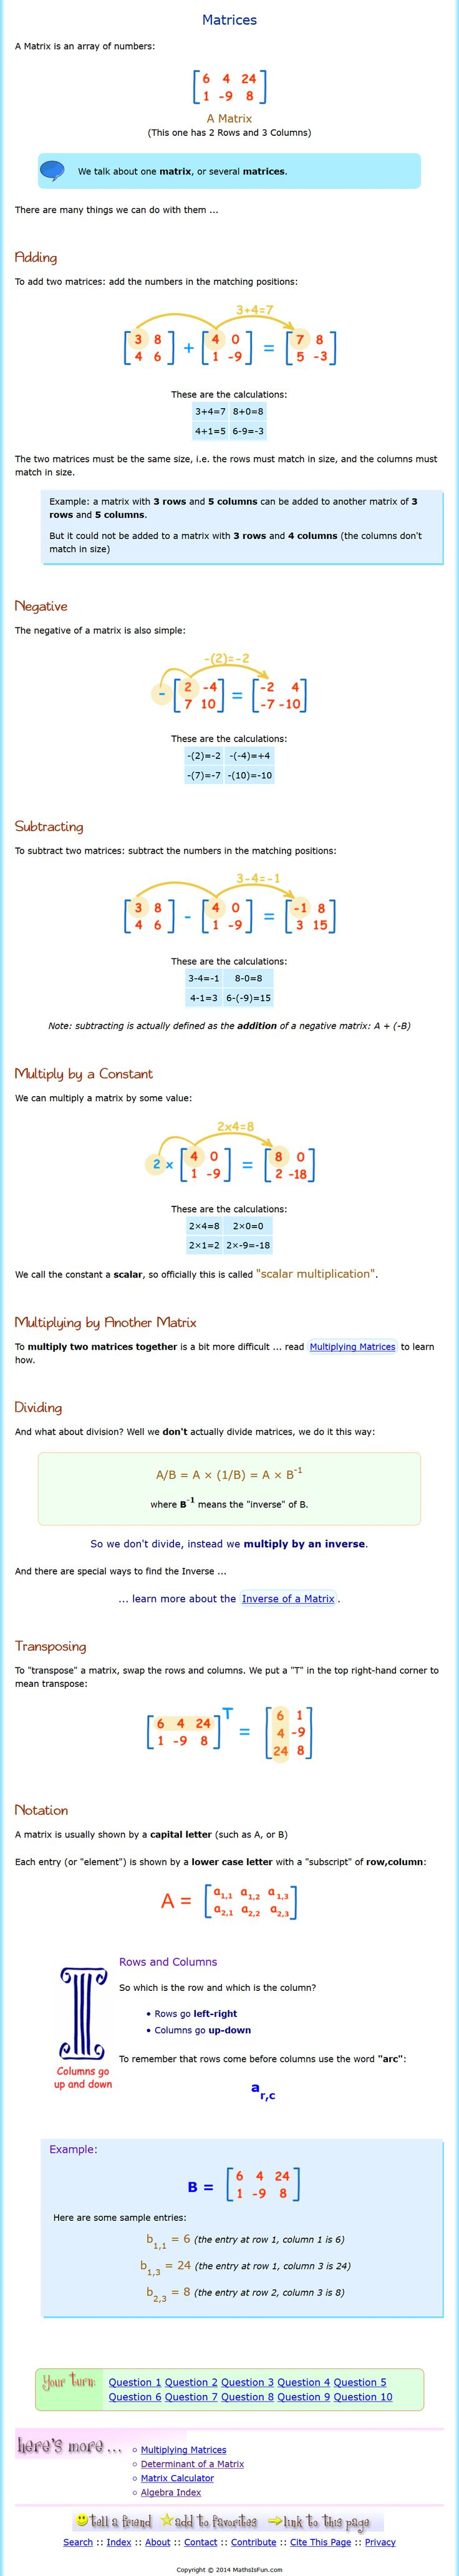 Matrices with Determinants